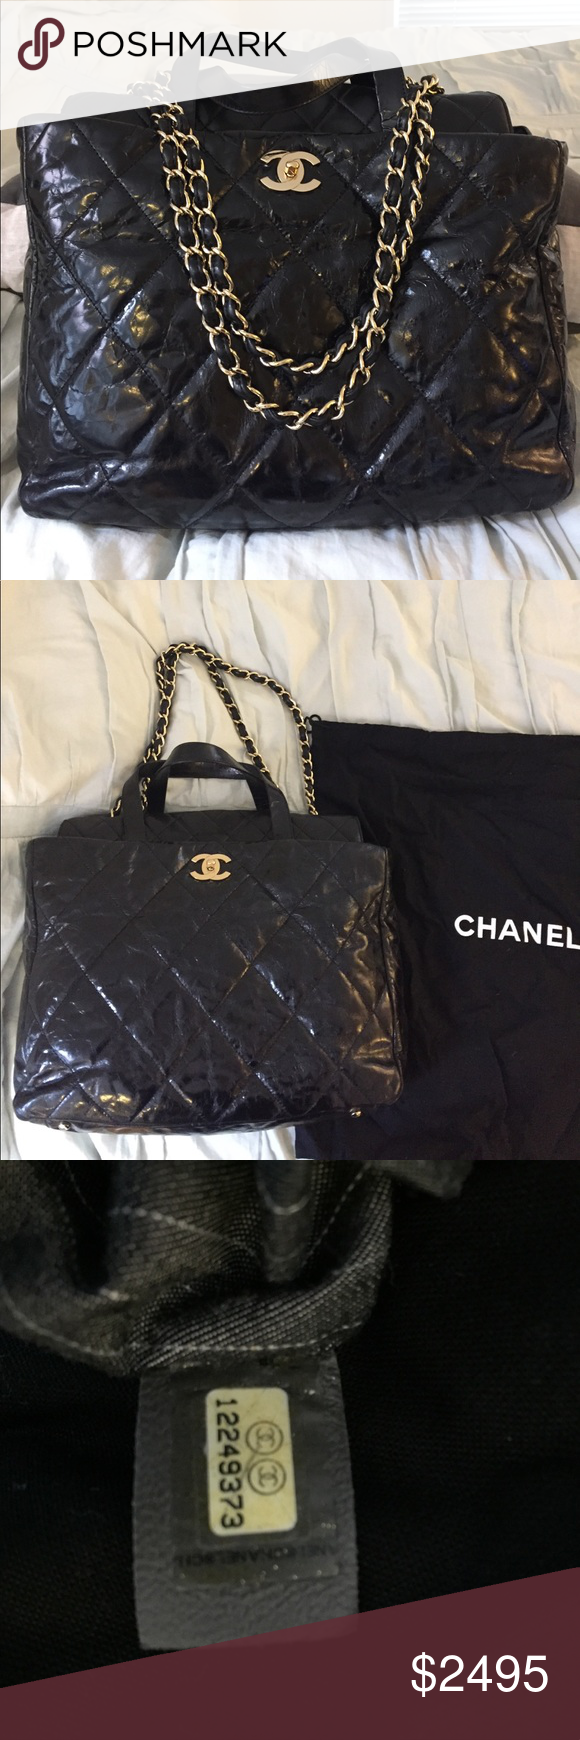 3a7c09ce9bbe Authentic Chanel Portobello Tote Authentic Chanel Portobello style tote bag  purchased from Saks a few years